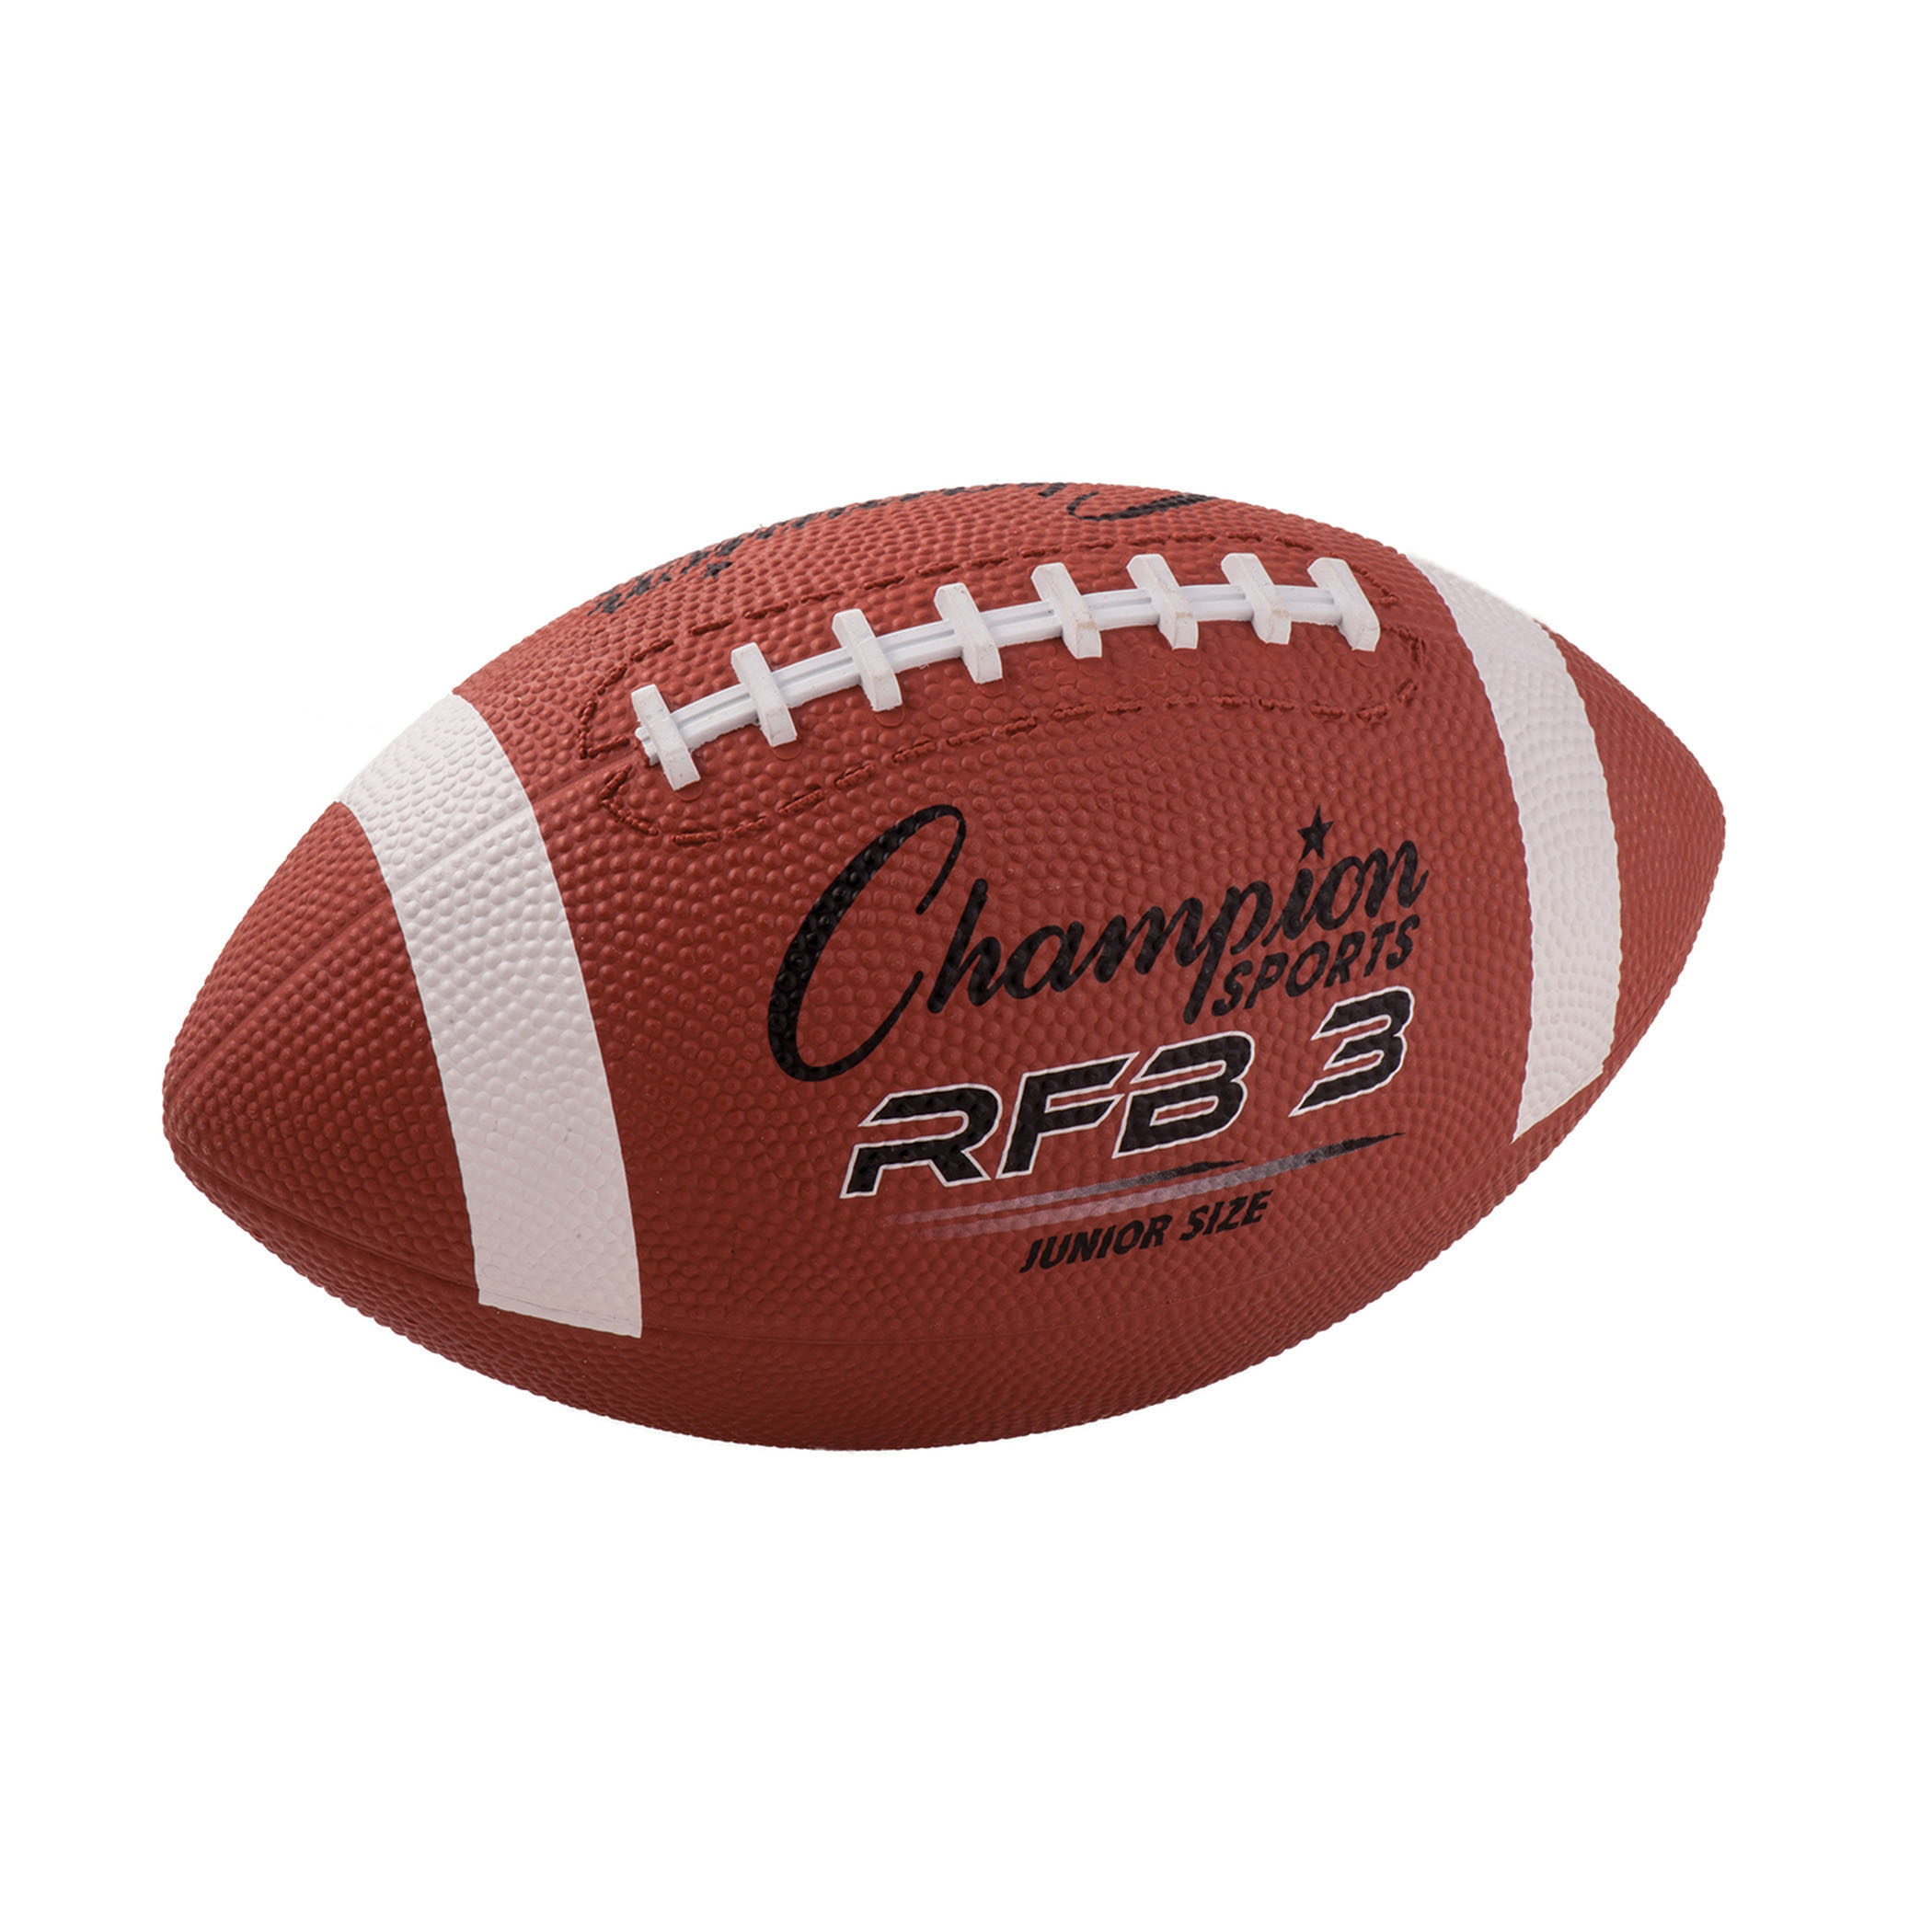 Junior Rubber Football, Pack of 2